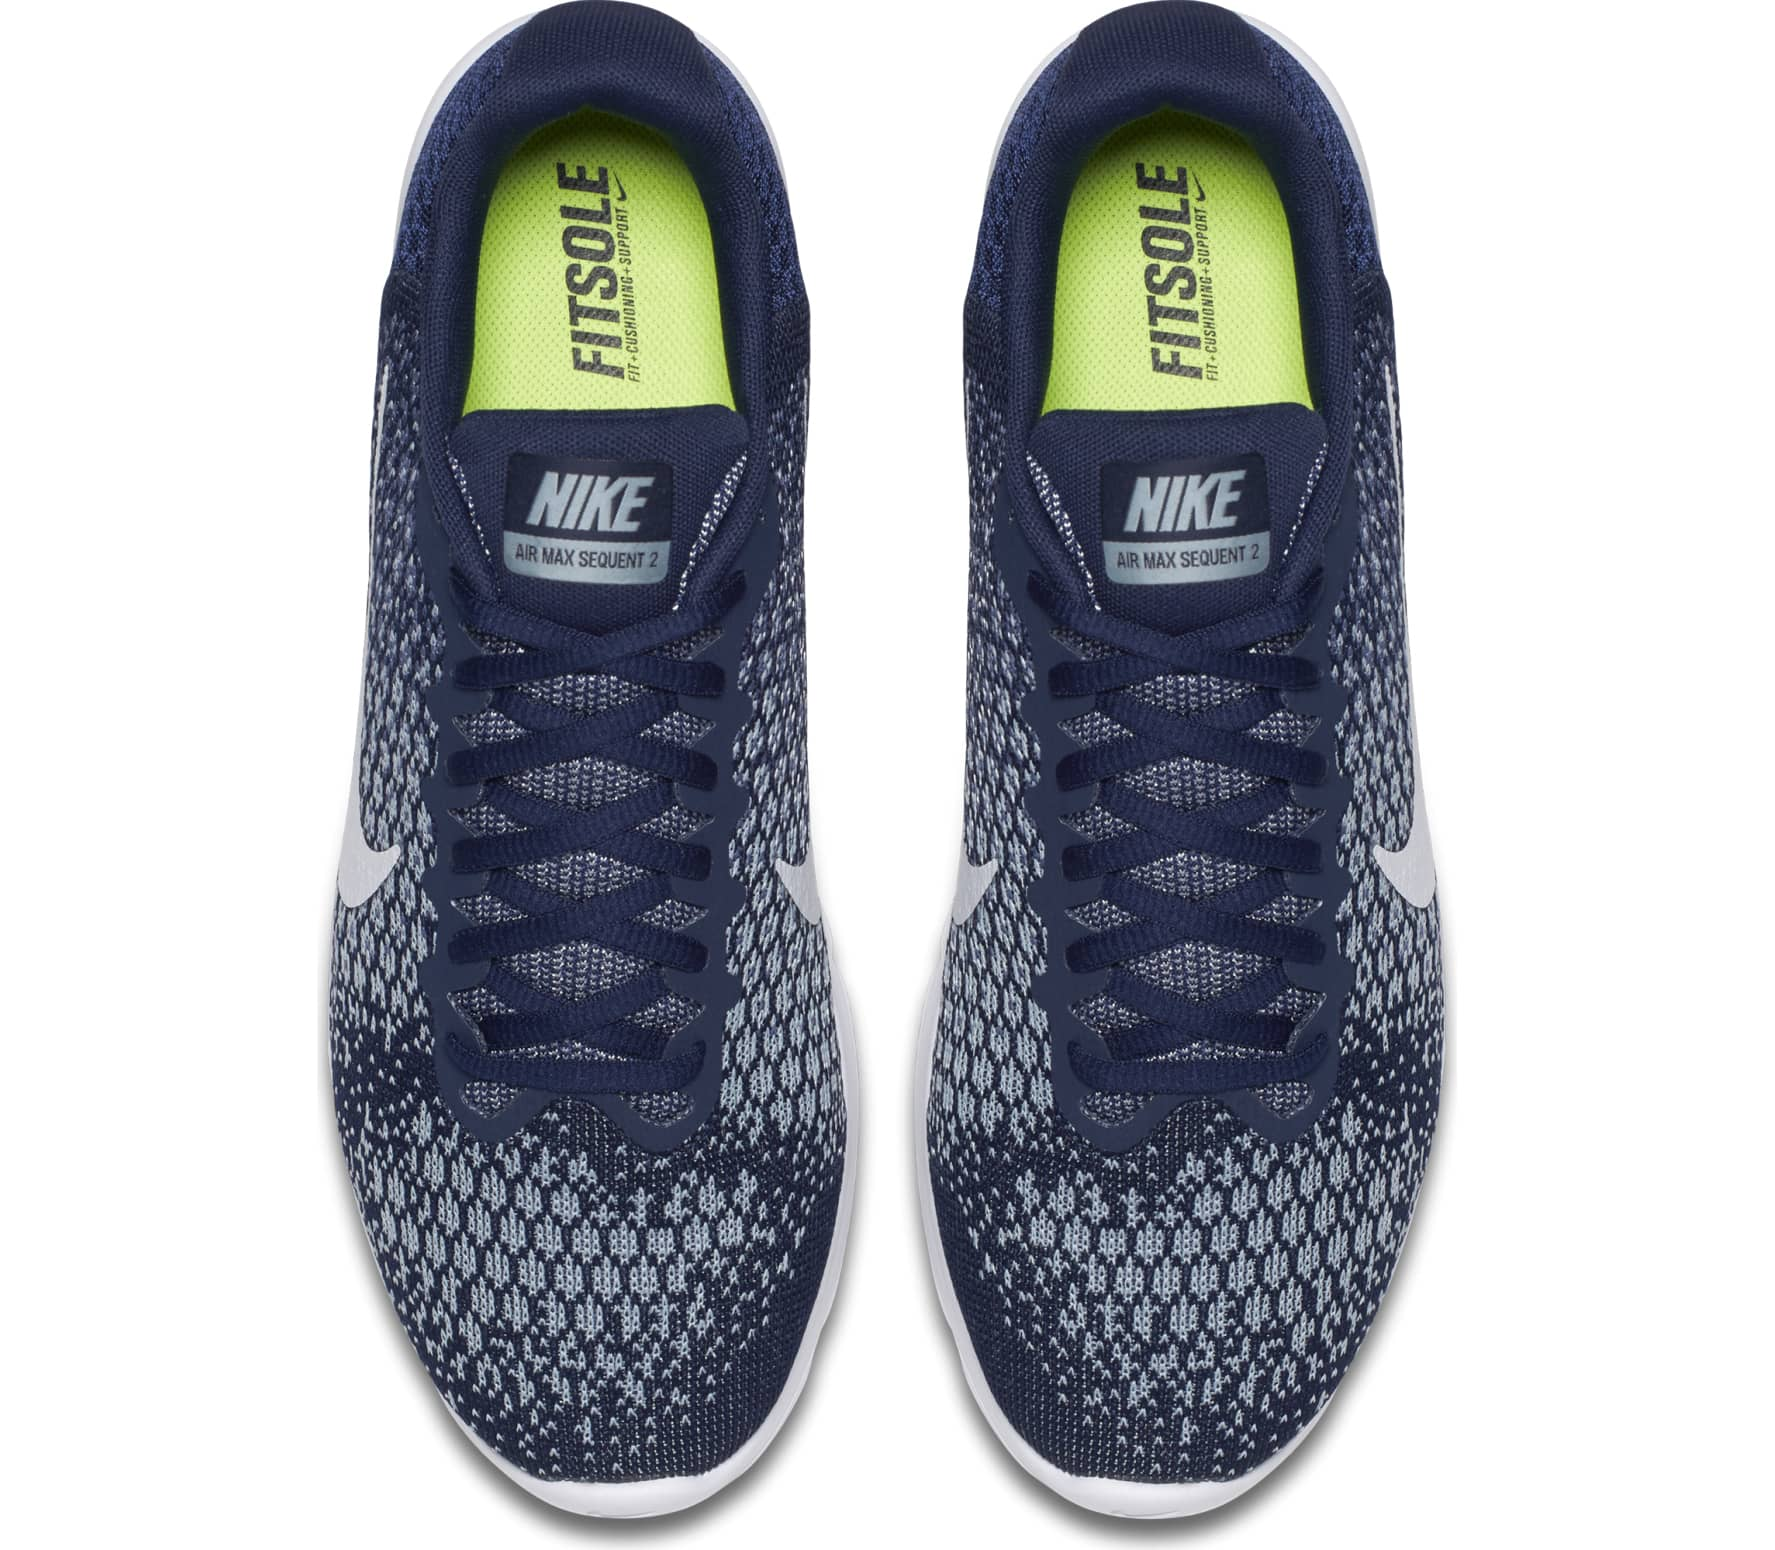 factory price f88f1 c8f1c Nike Air Max Sequent 2 Men